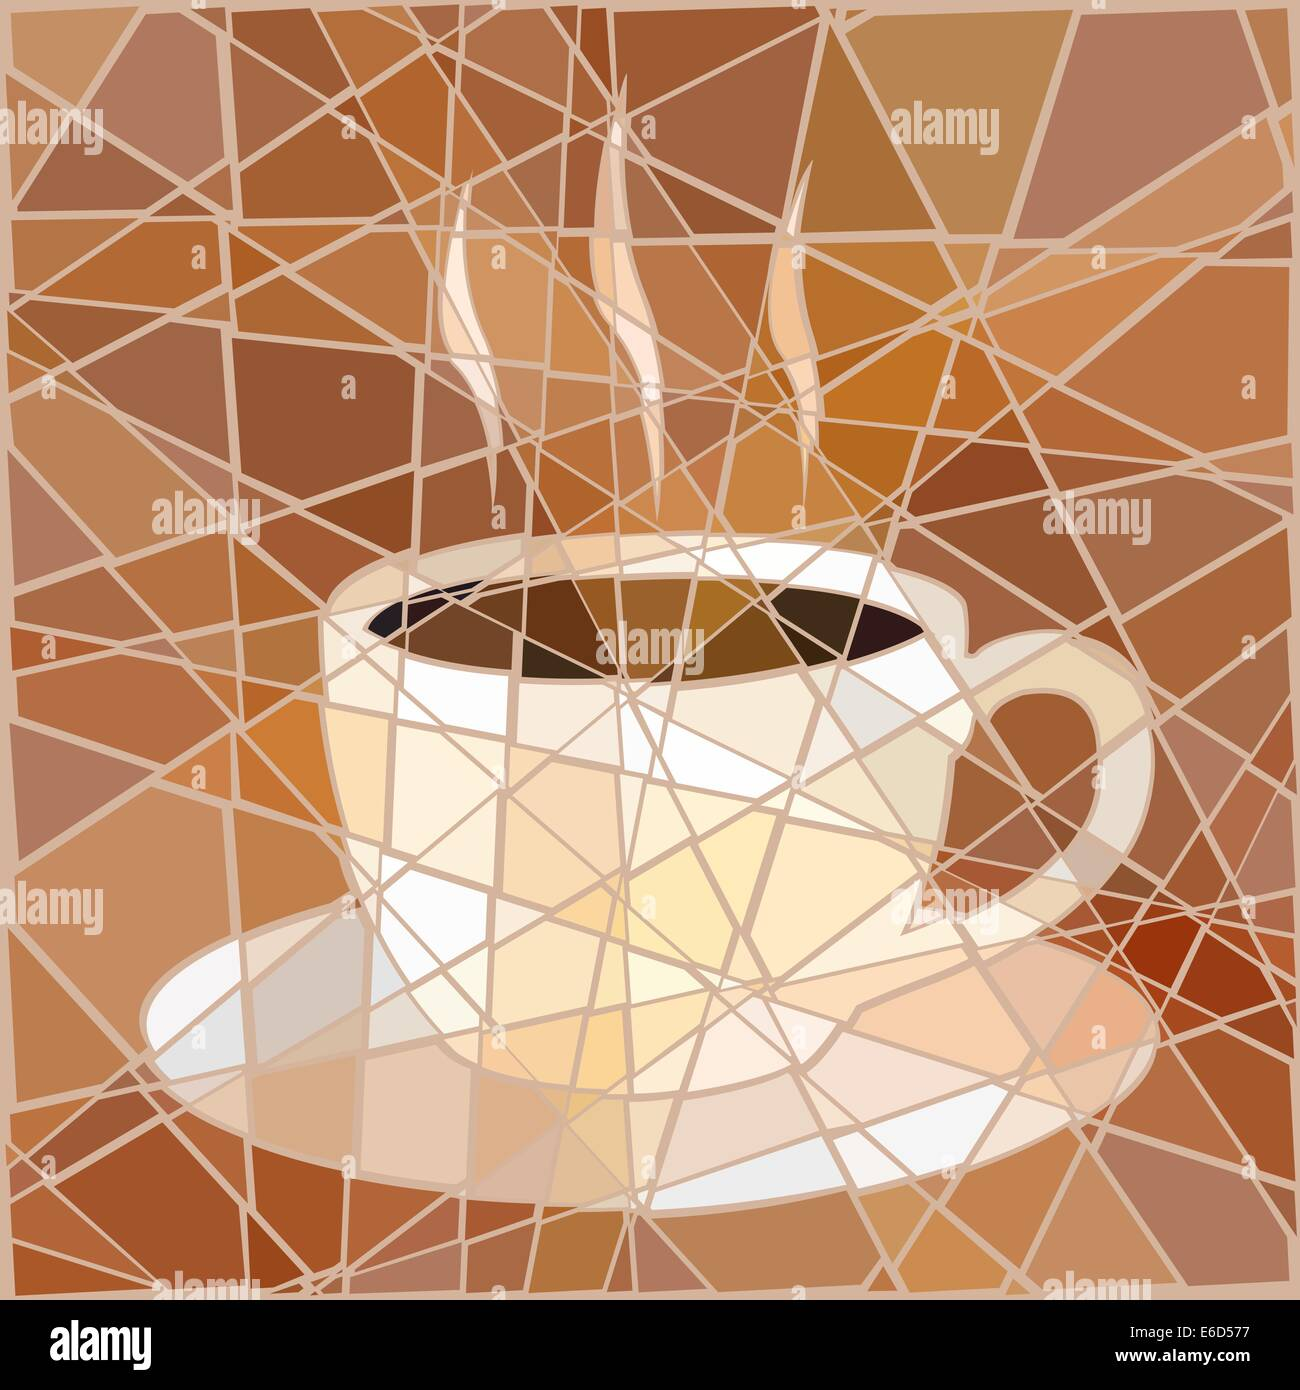 Editable vector mosaic illustration of a cup of steaming coffee - Stock Image